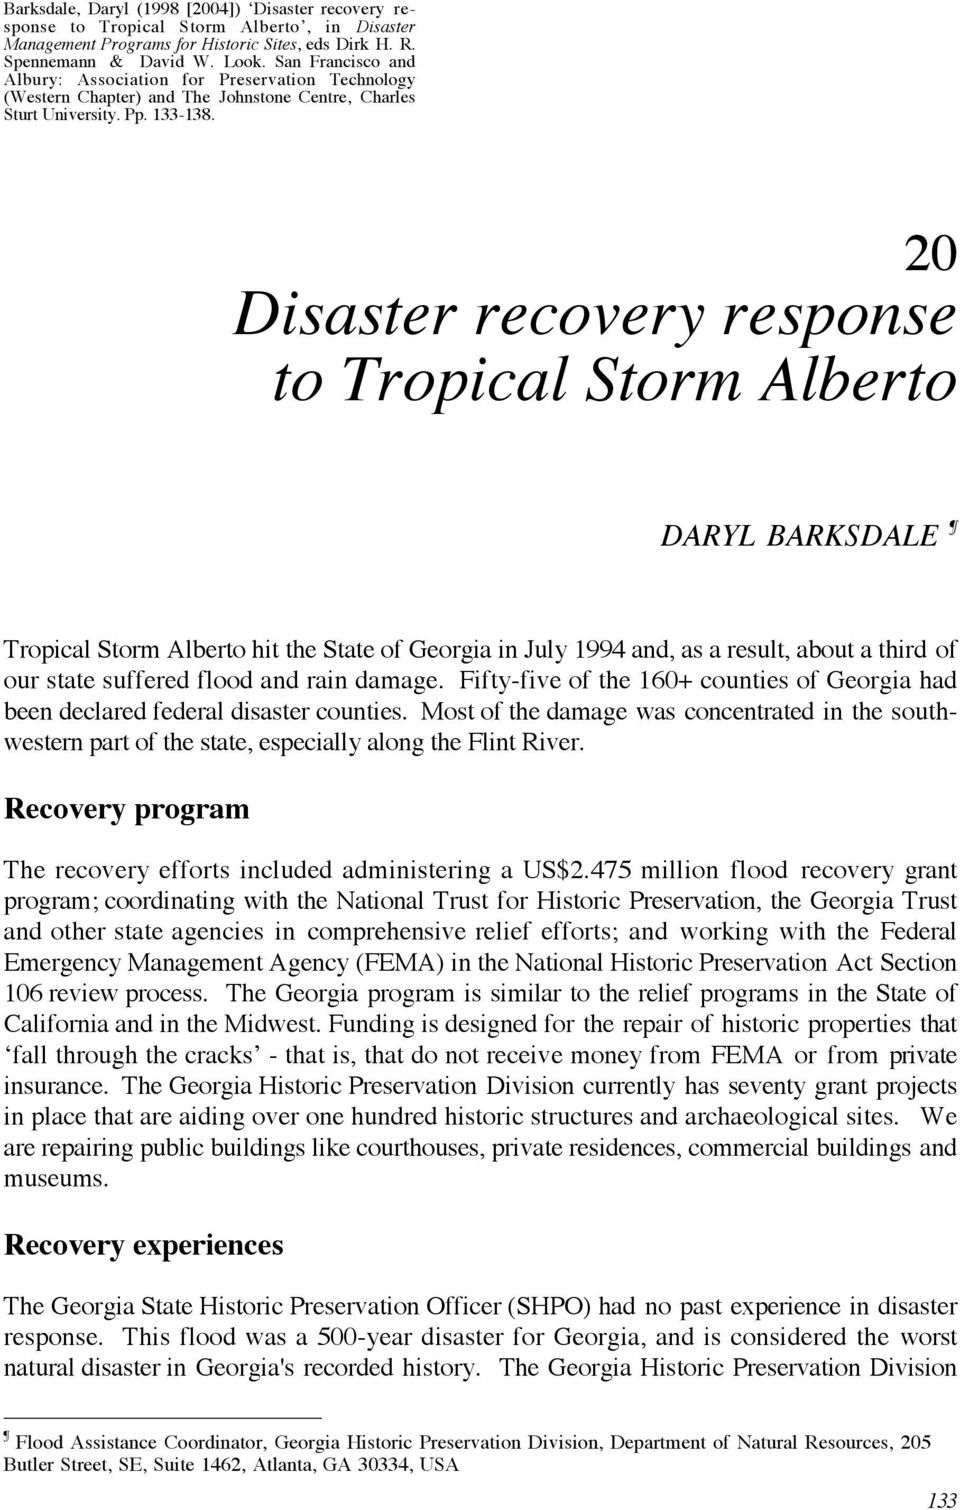 20 Disaster recovery response to Tropical Storm Alberto DARYL BARKSDALE Tropical Storm Alberto hit the State of Georgia in July 1994 and, as a result, about a third of our state suffered flood and